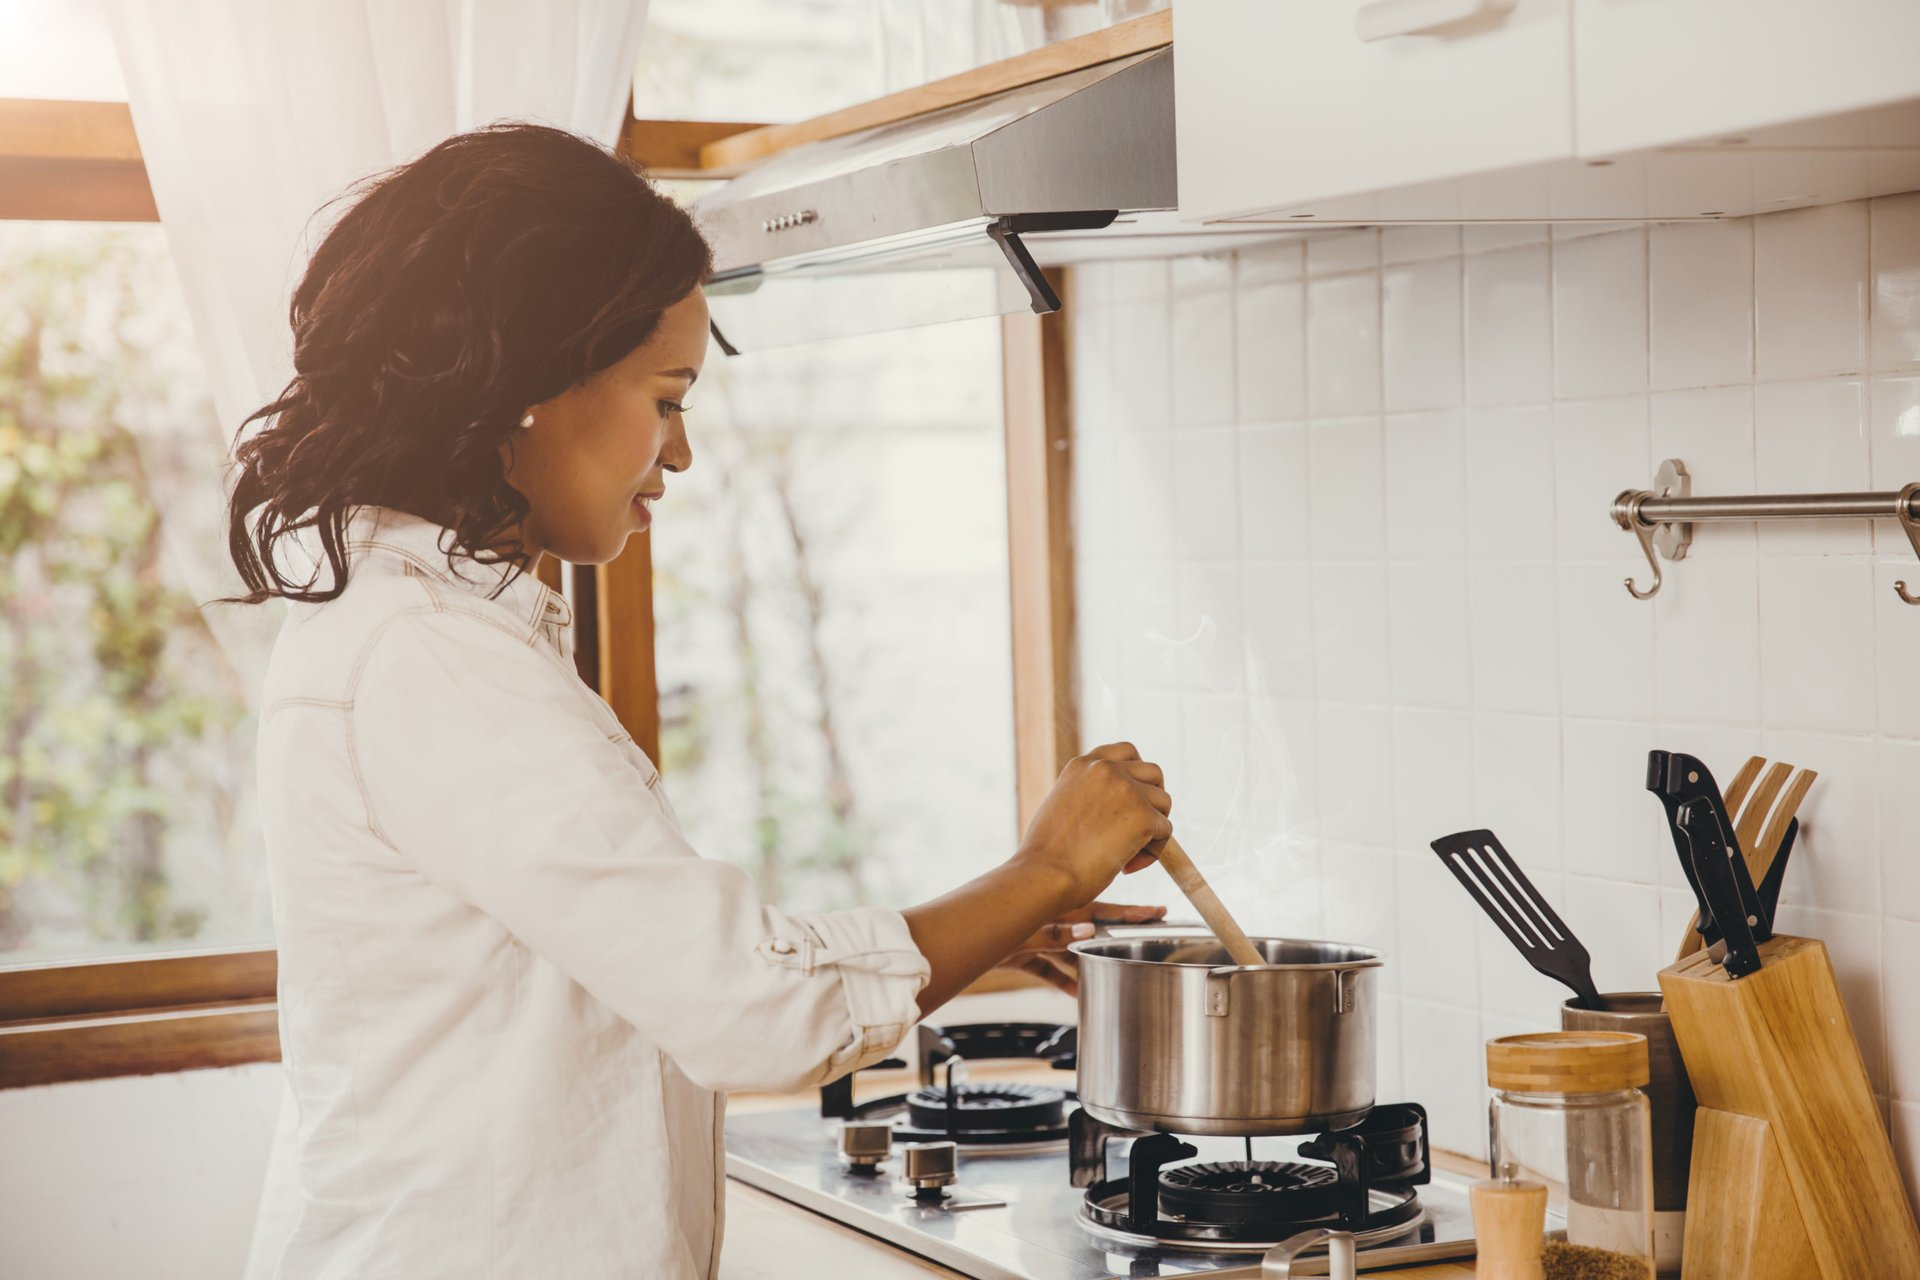 Woman cooking food on her stove